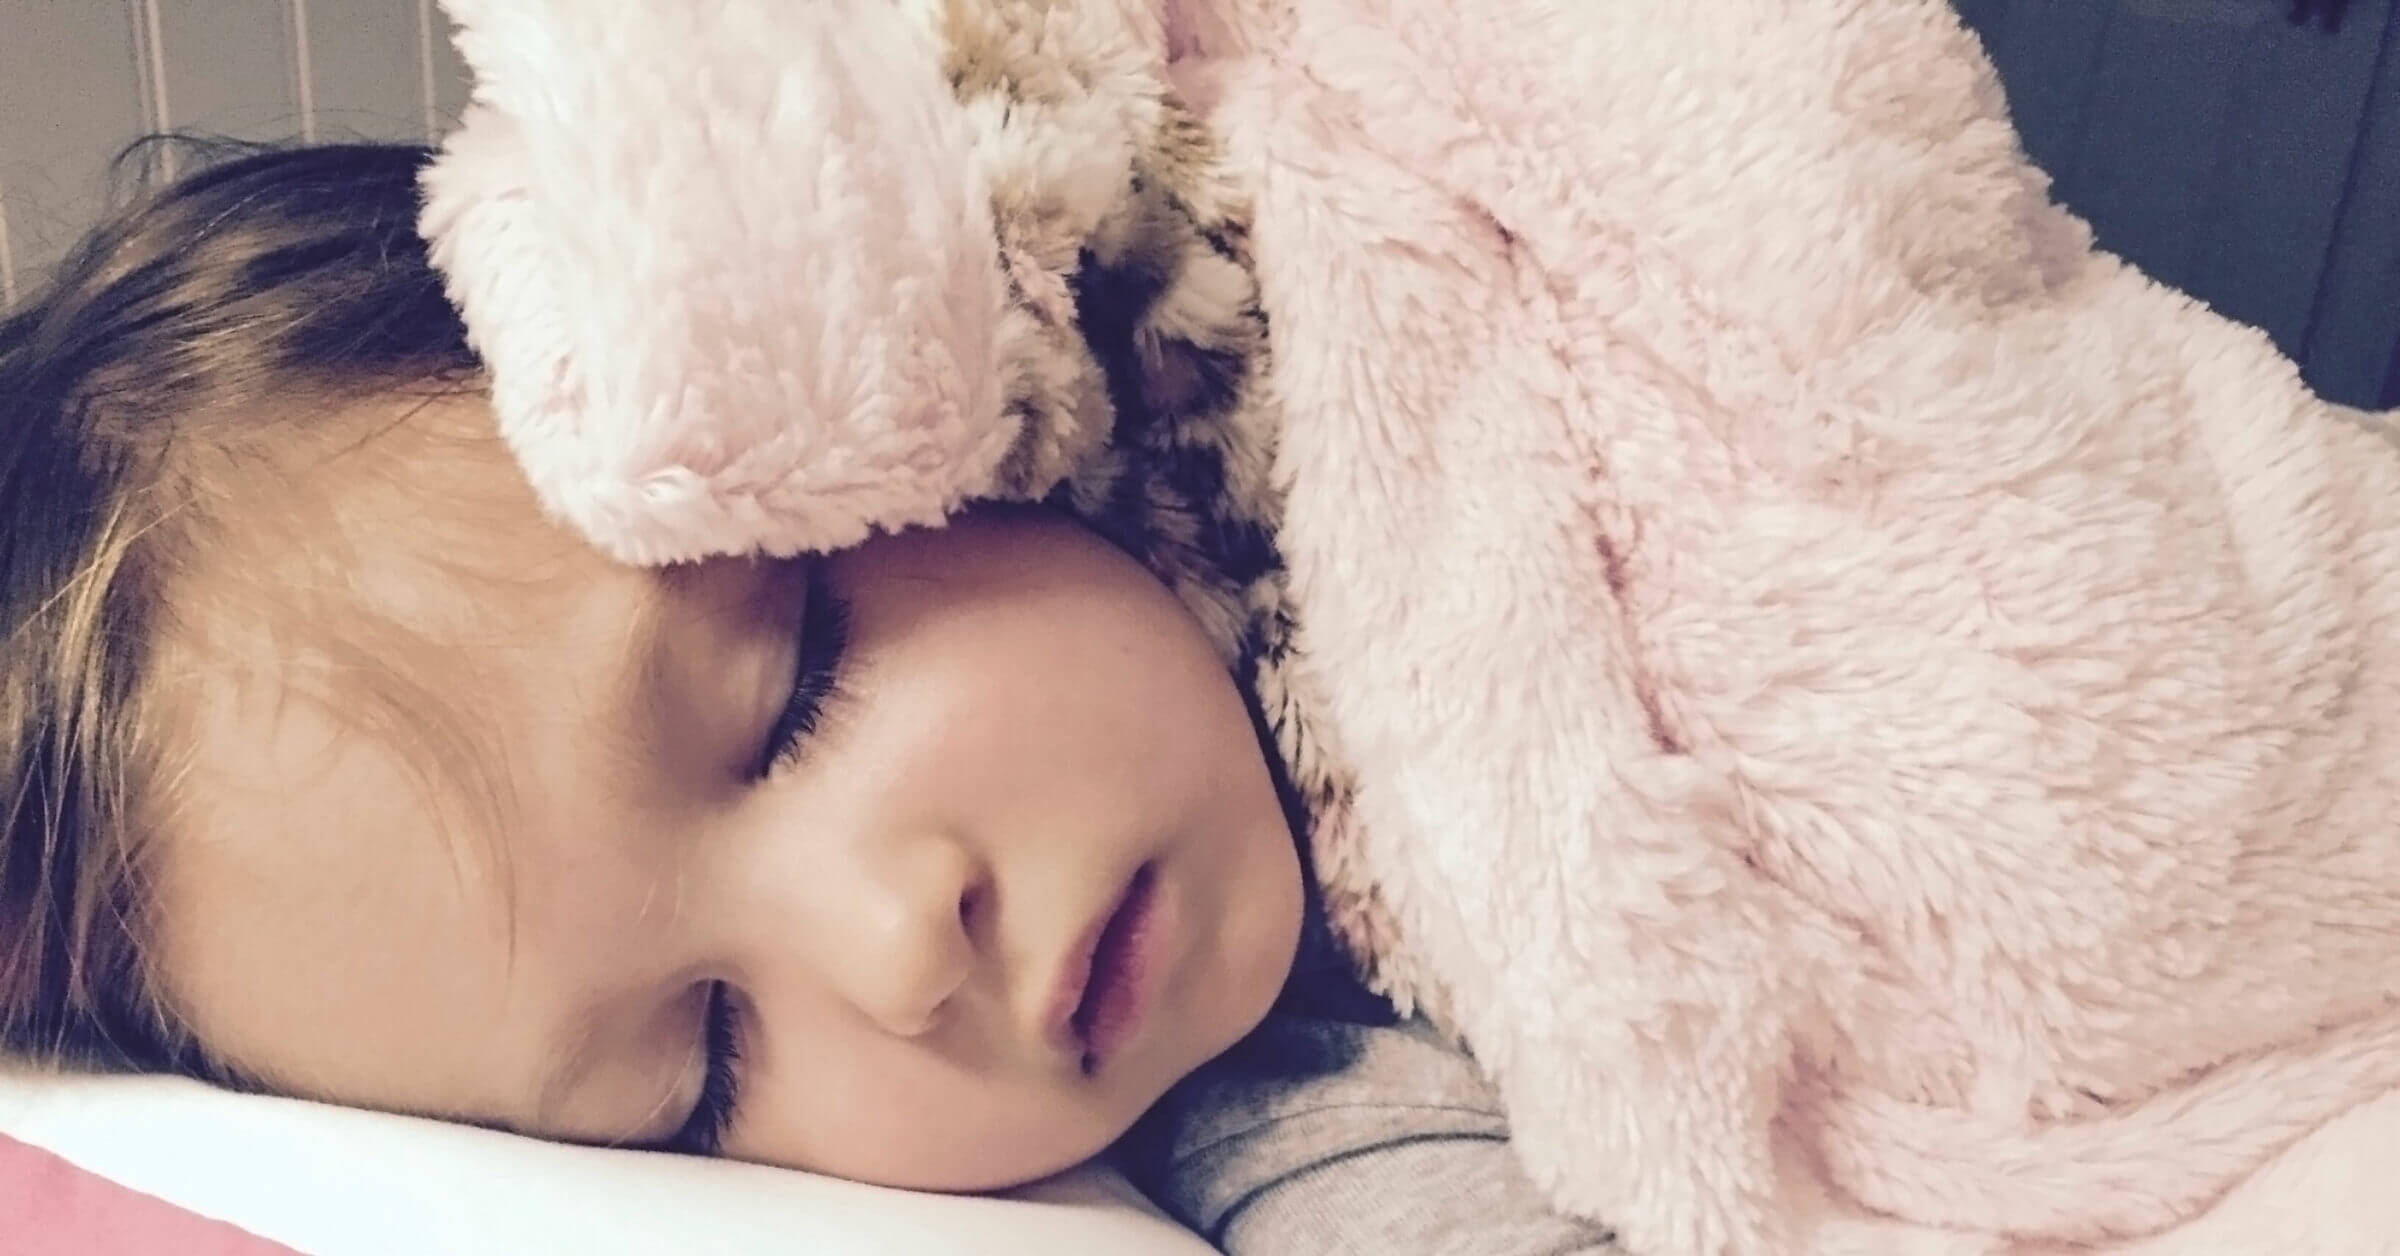 Bedtime tips when the toddler and baby share a room